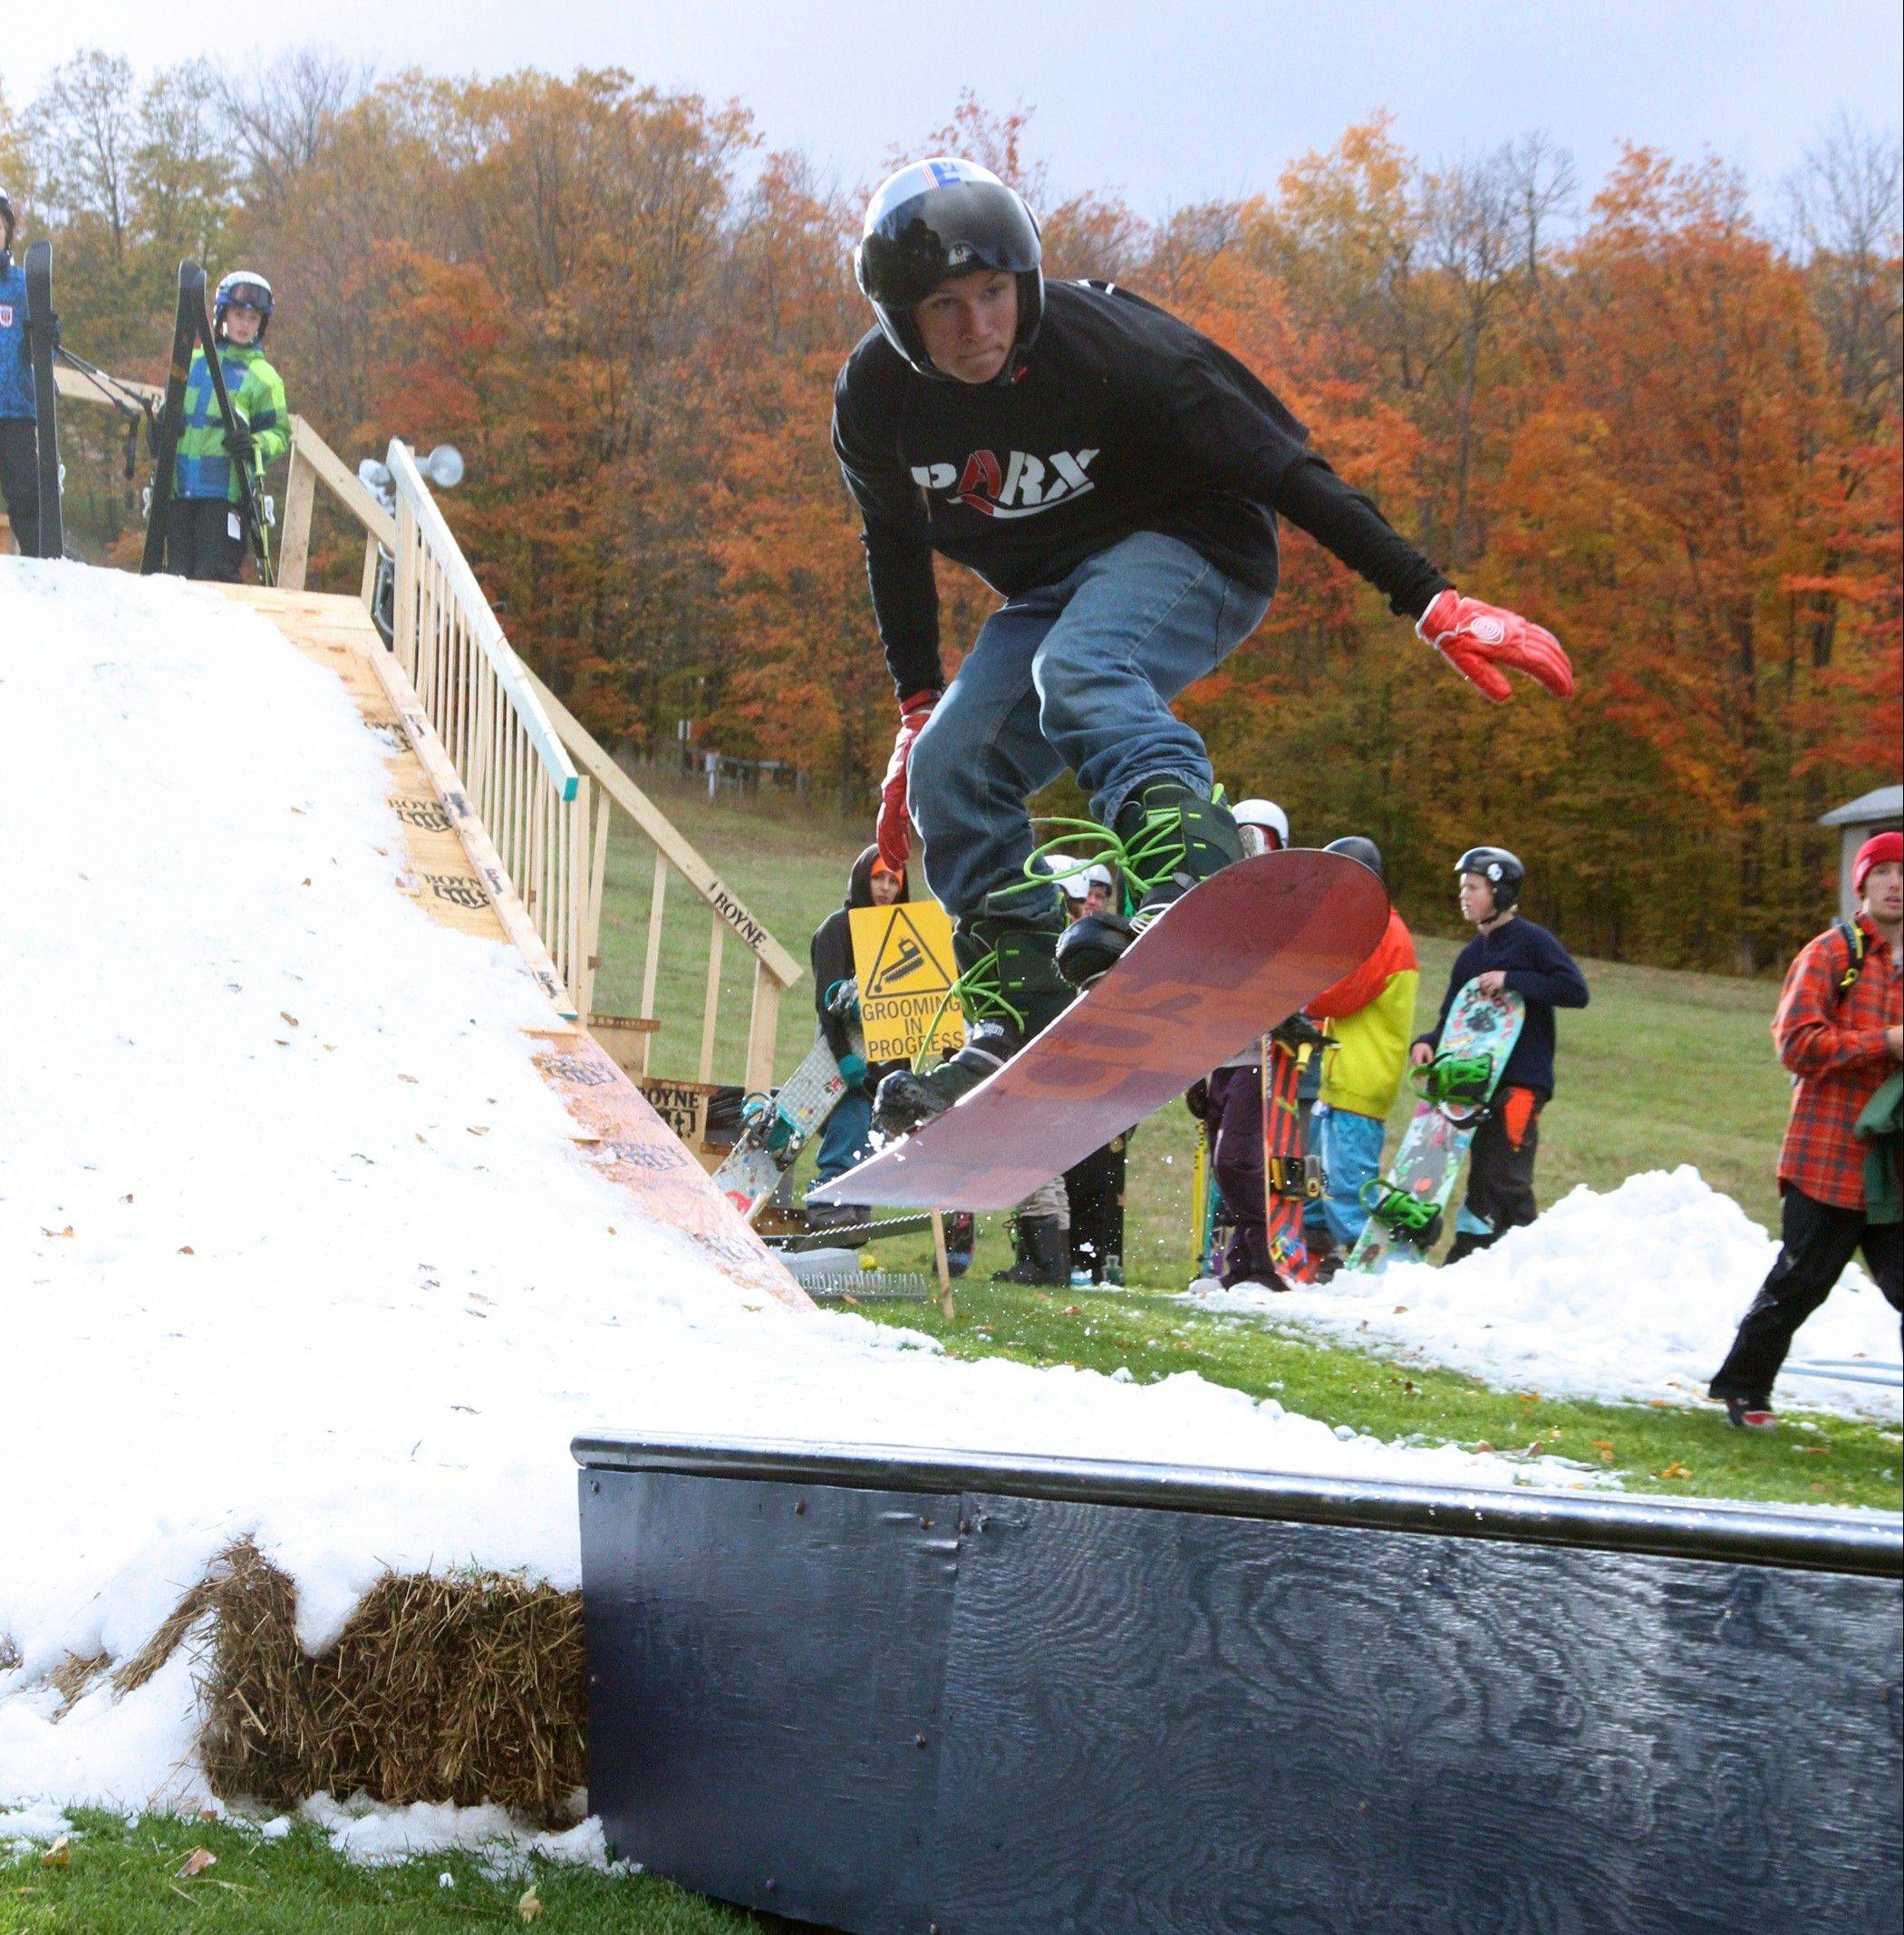 A competitive rail jam is one of many popular performances during Boyne Mountain's Skitoberfest Oct. 4-5.